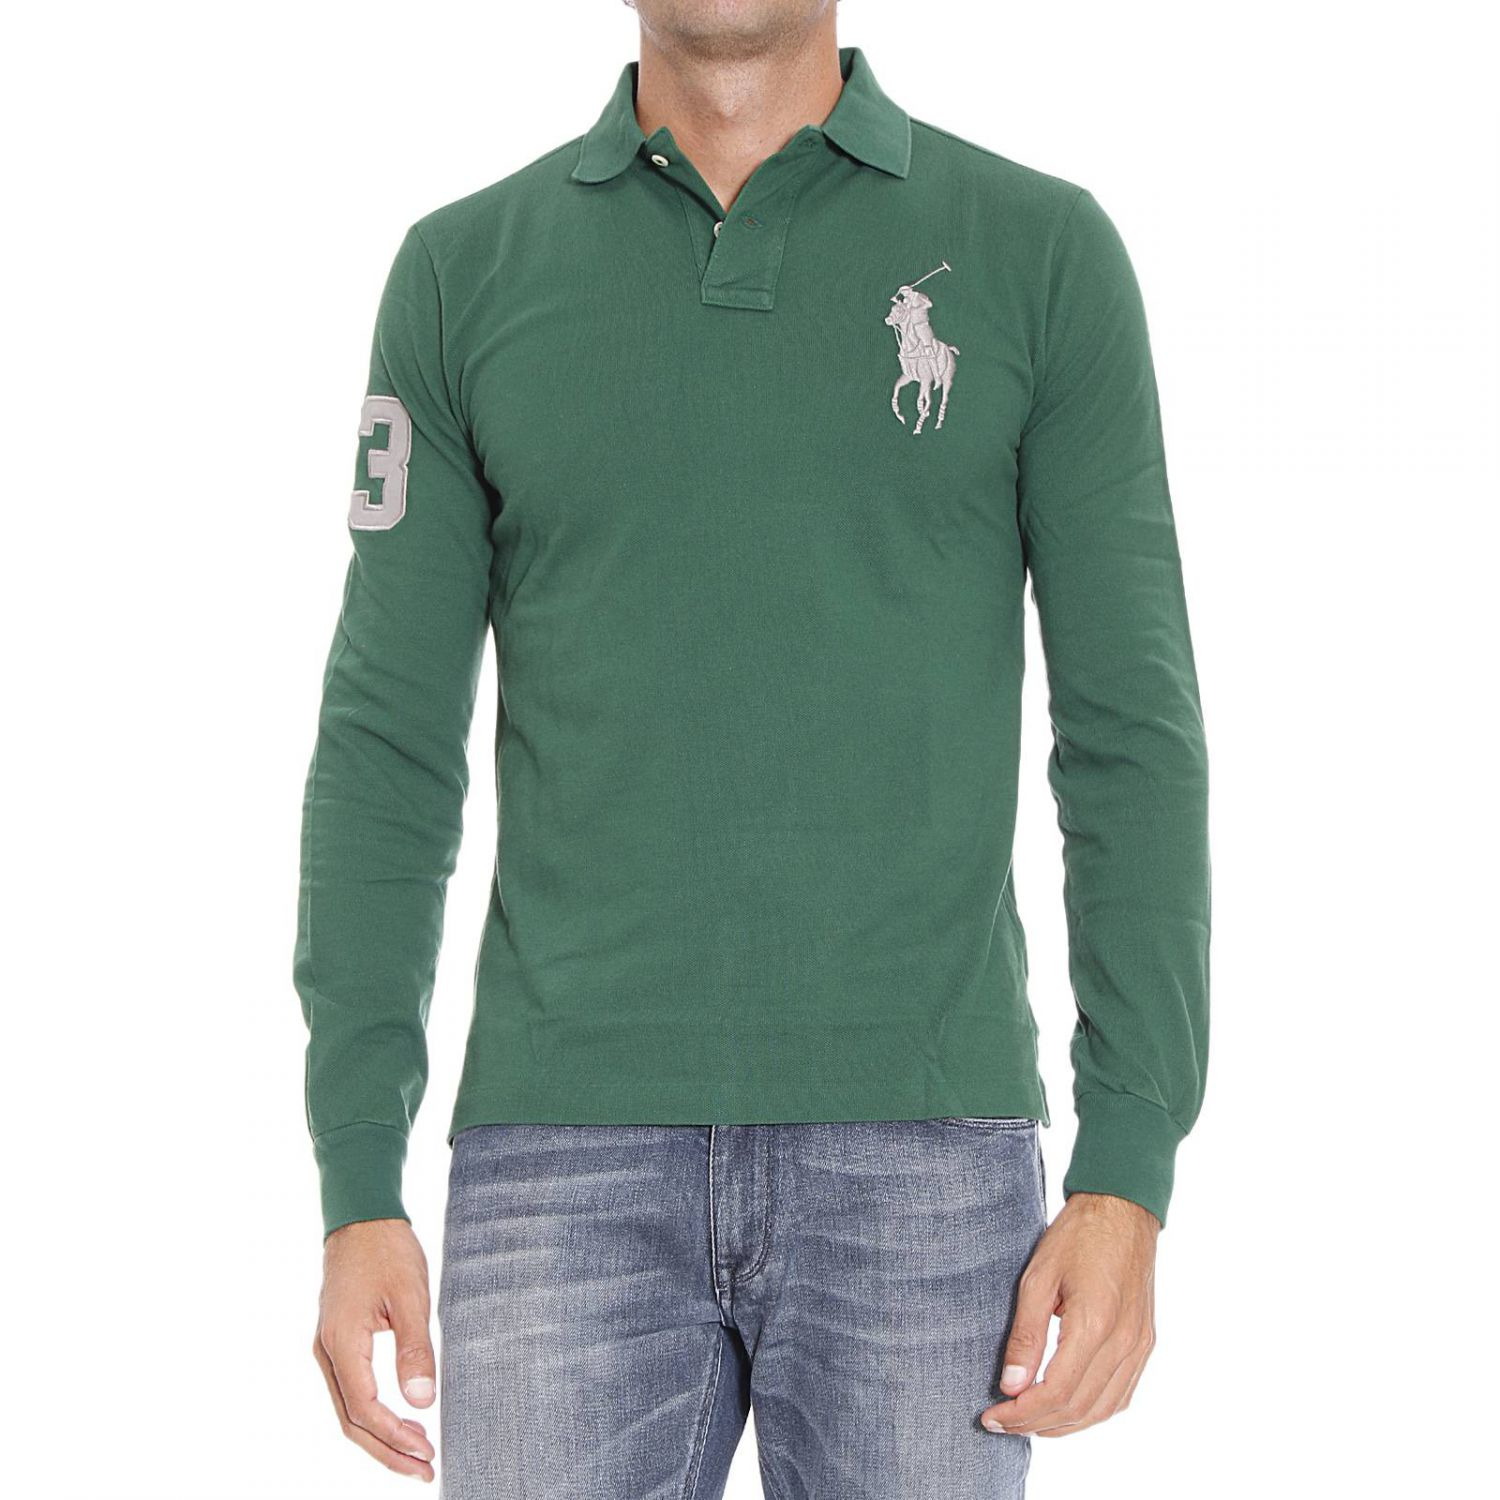 Polo ralph lauren green t shirt for men lyst for Forest green polo shirts